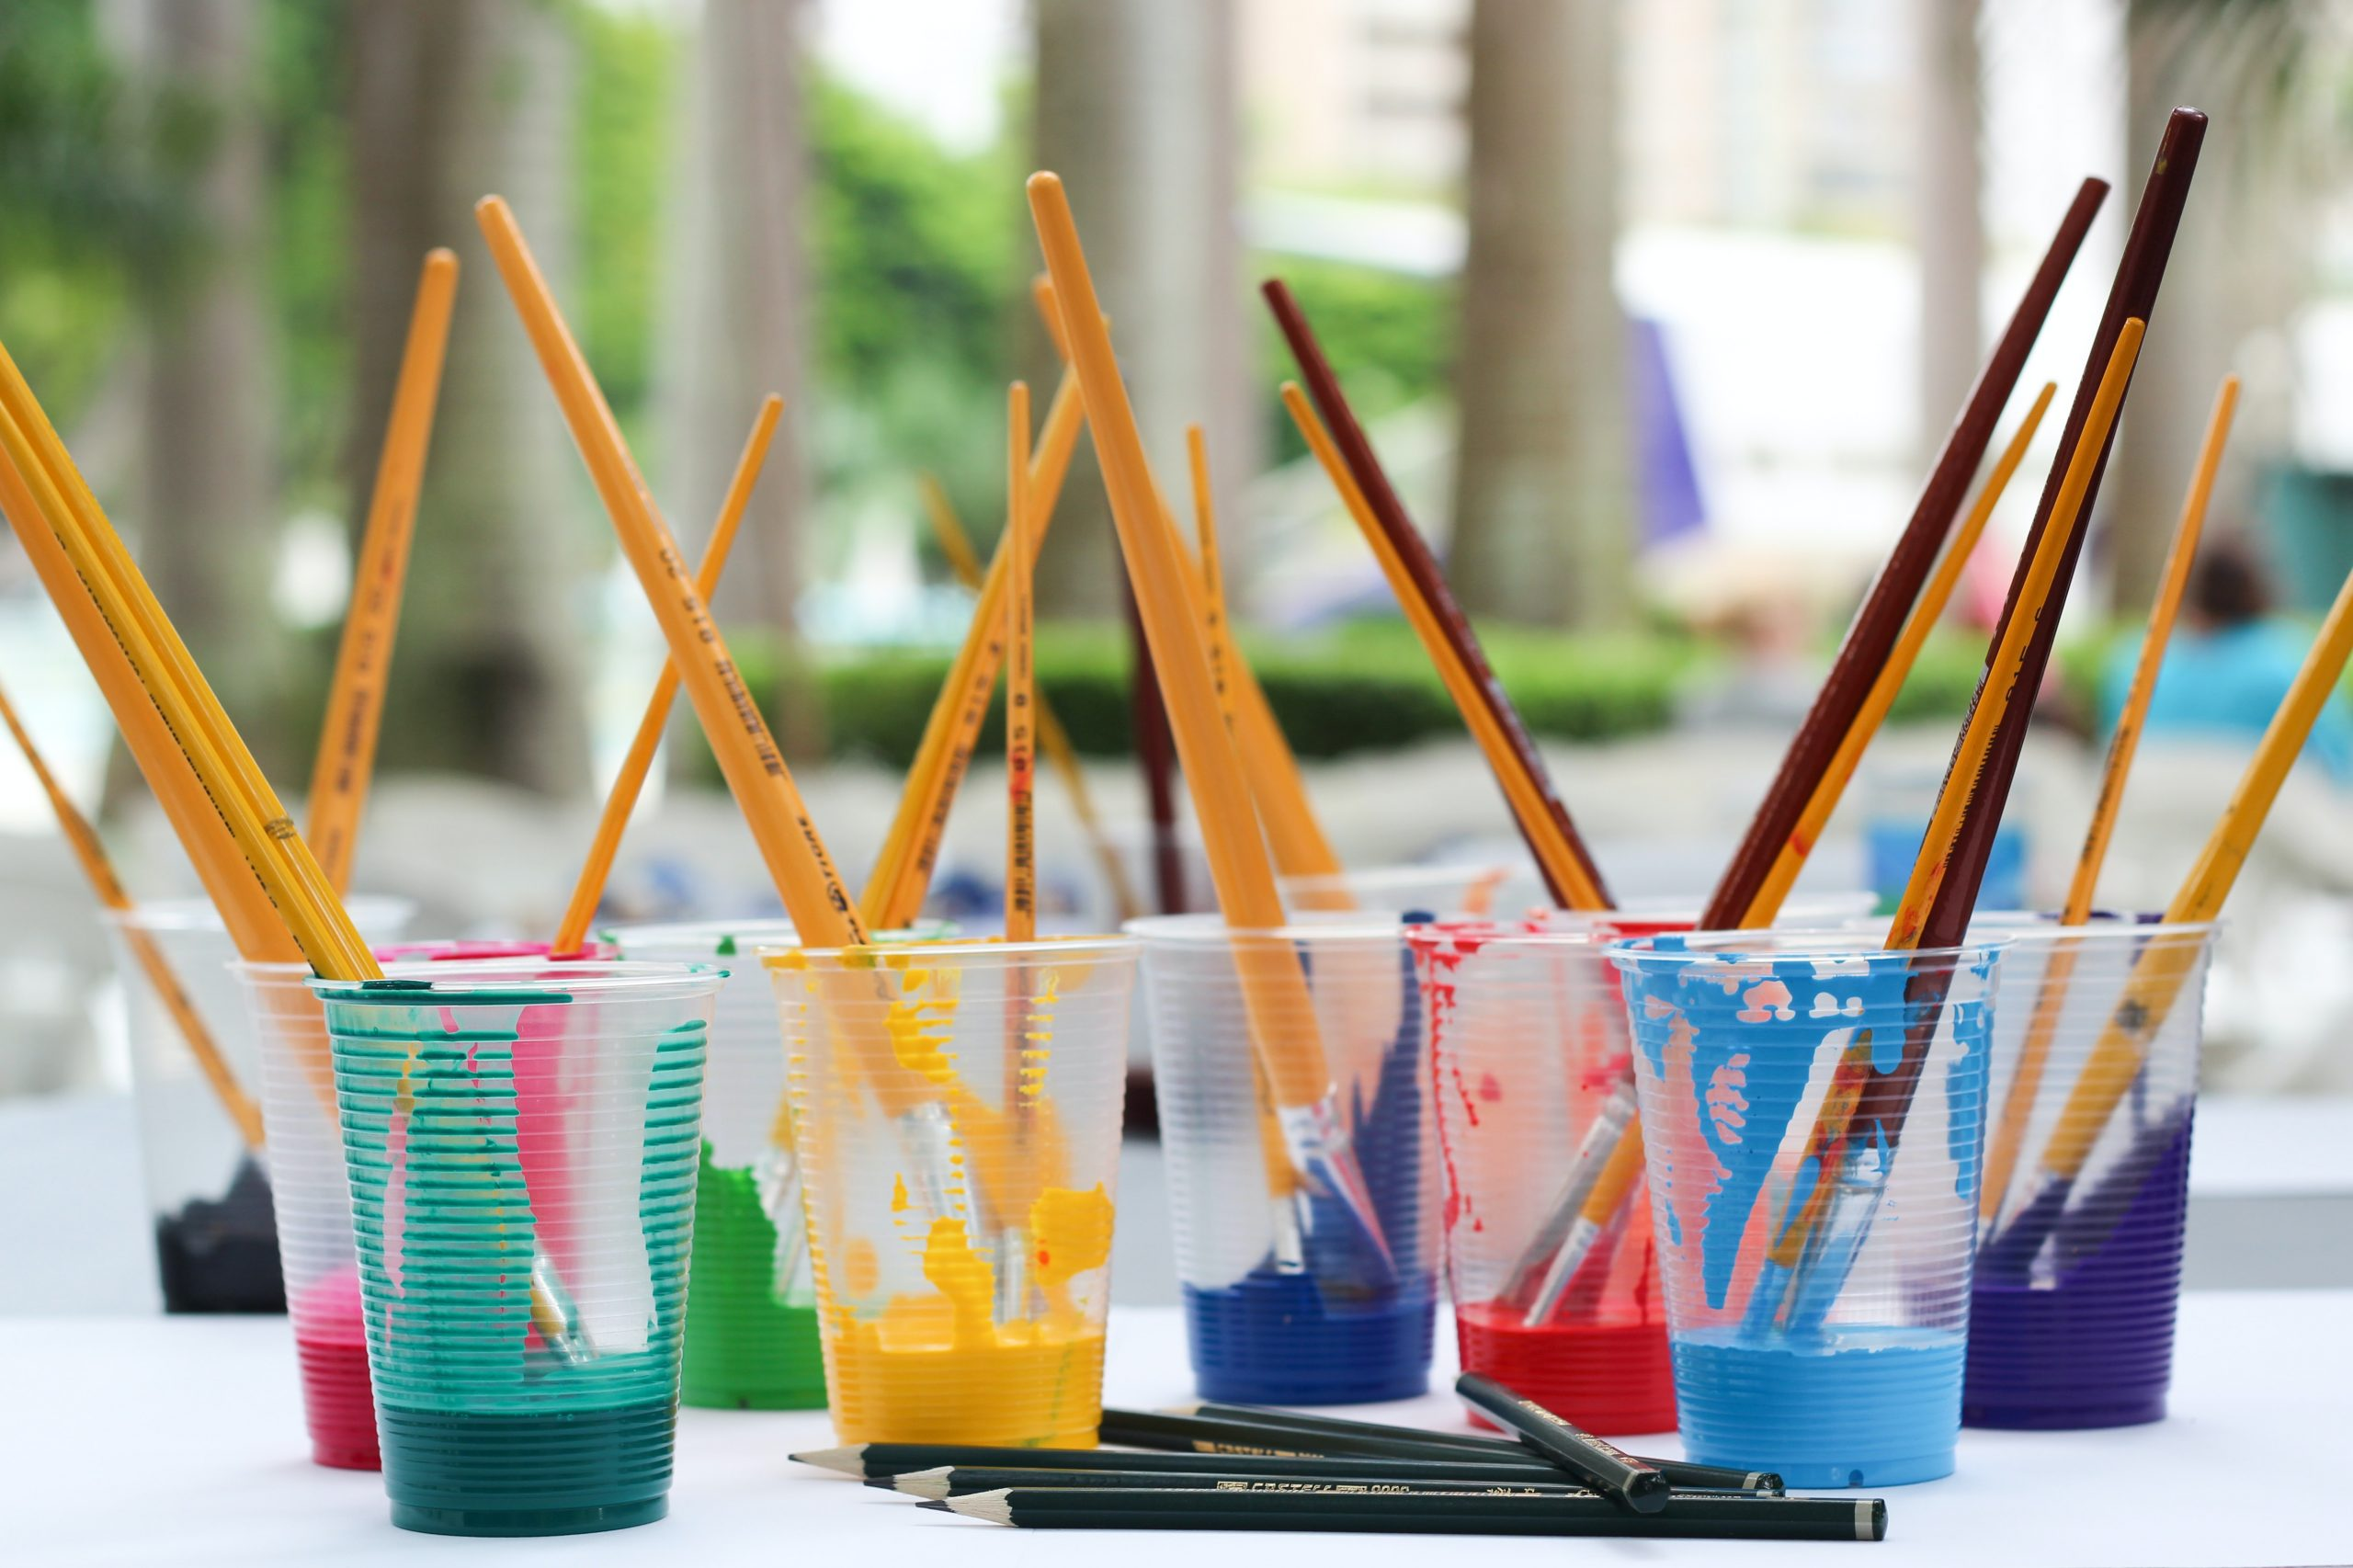 Cups with different color paint and paint brushes in them